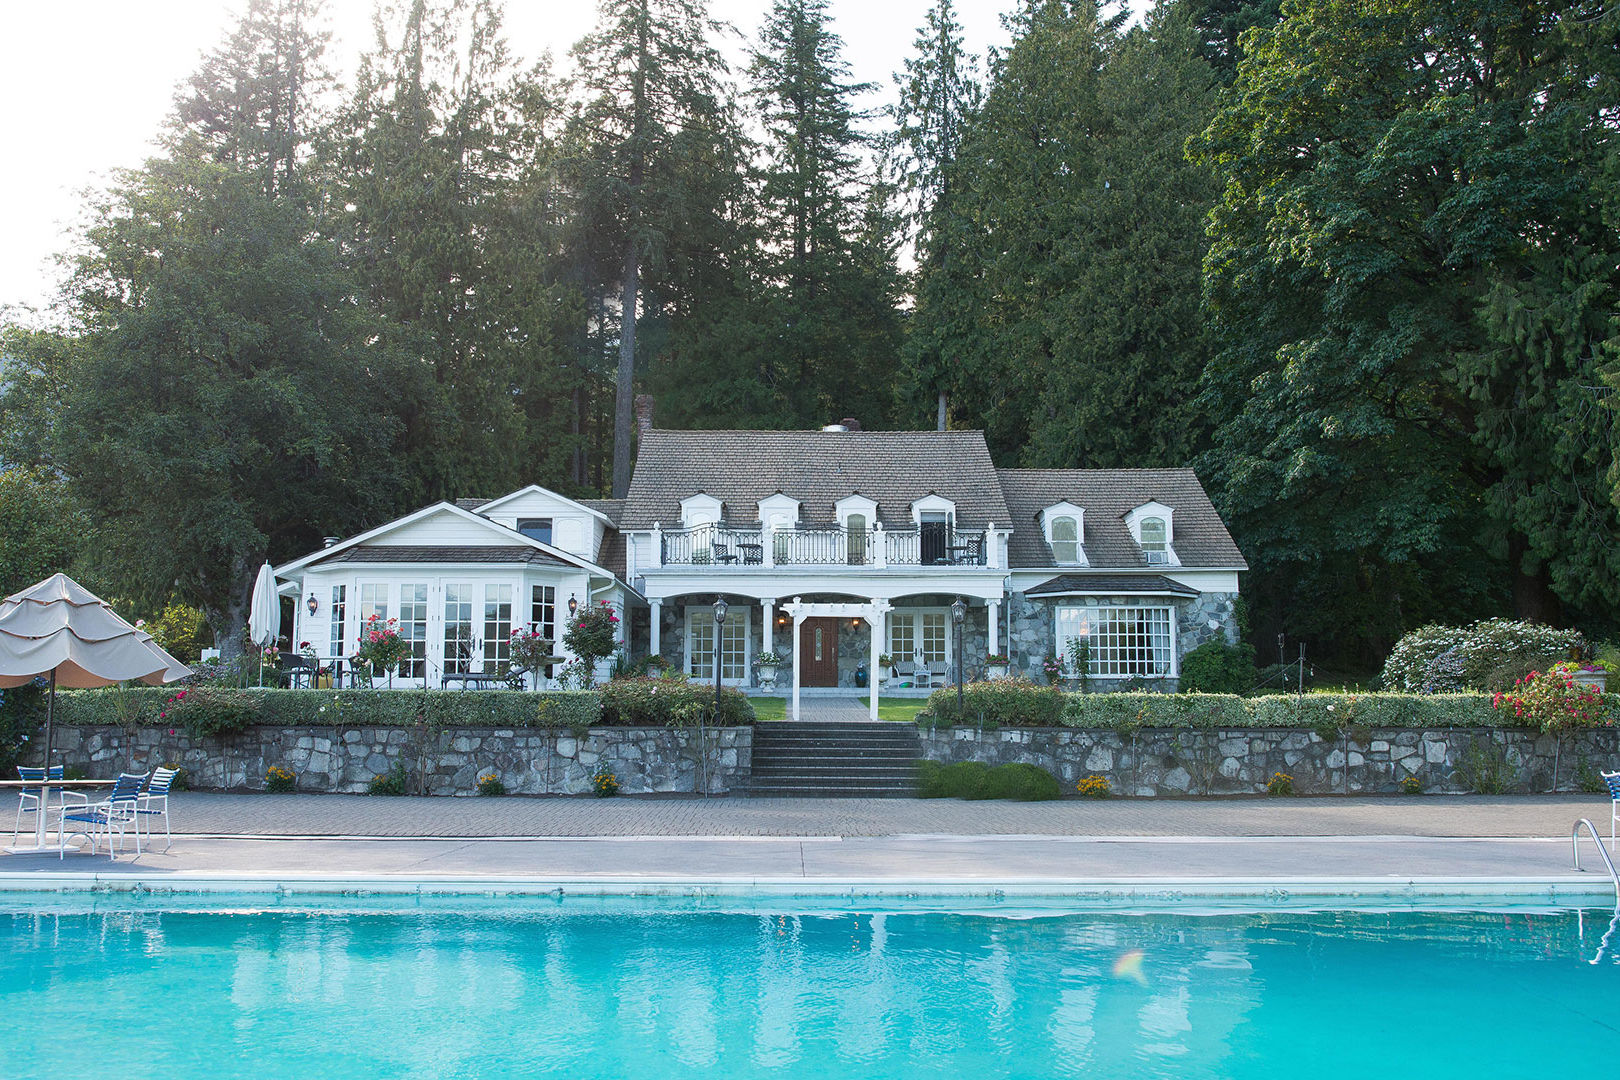 You Can Stay at This Beautiful Hotel Where 5 Hallmark Channel Movies Were Filmed